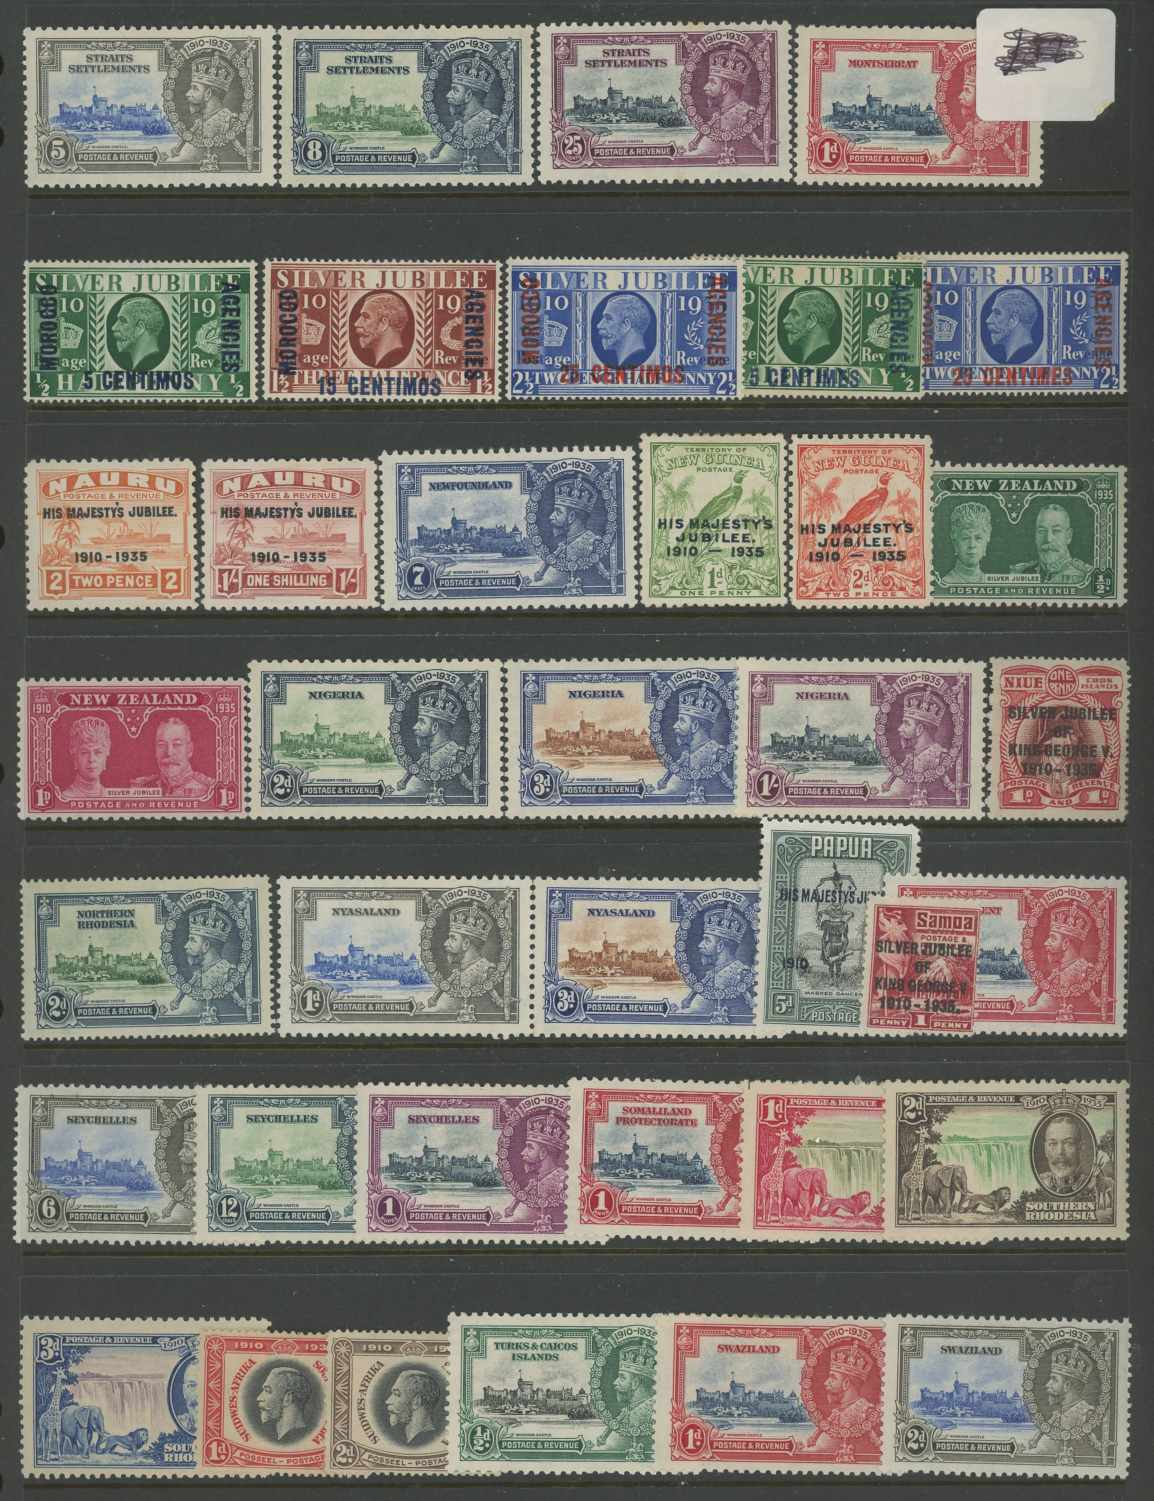 1935 Silver Jubilee odd values to 1/- Mint on Hagner sheets. - Image 2 of 4